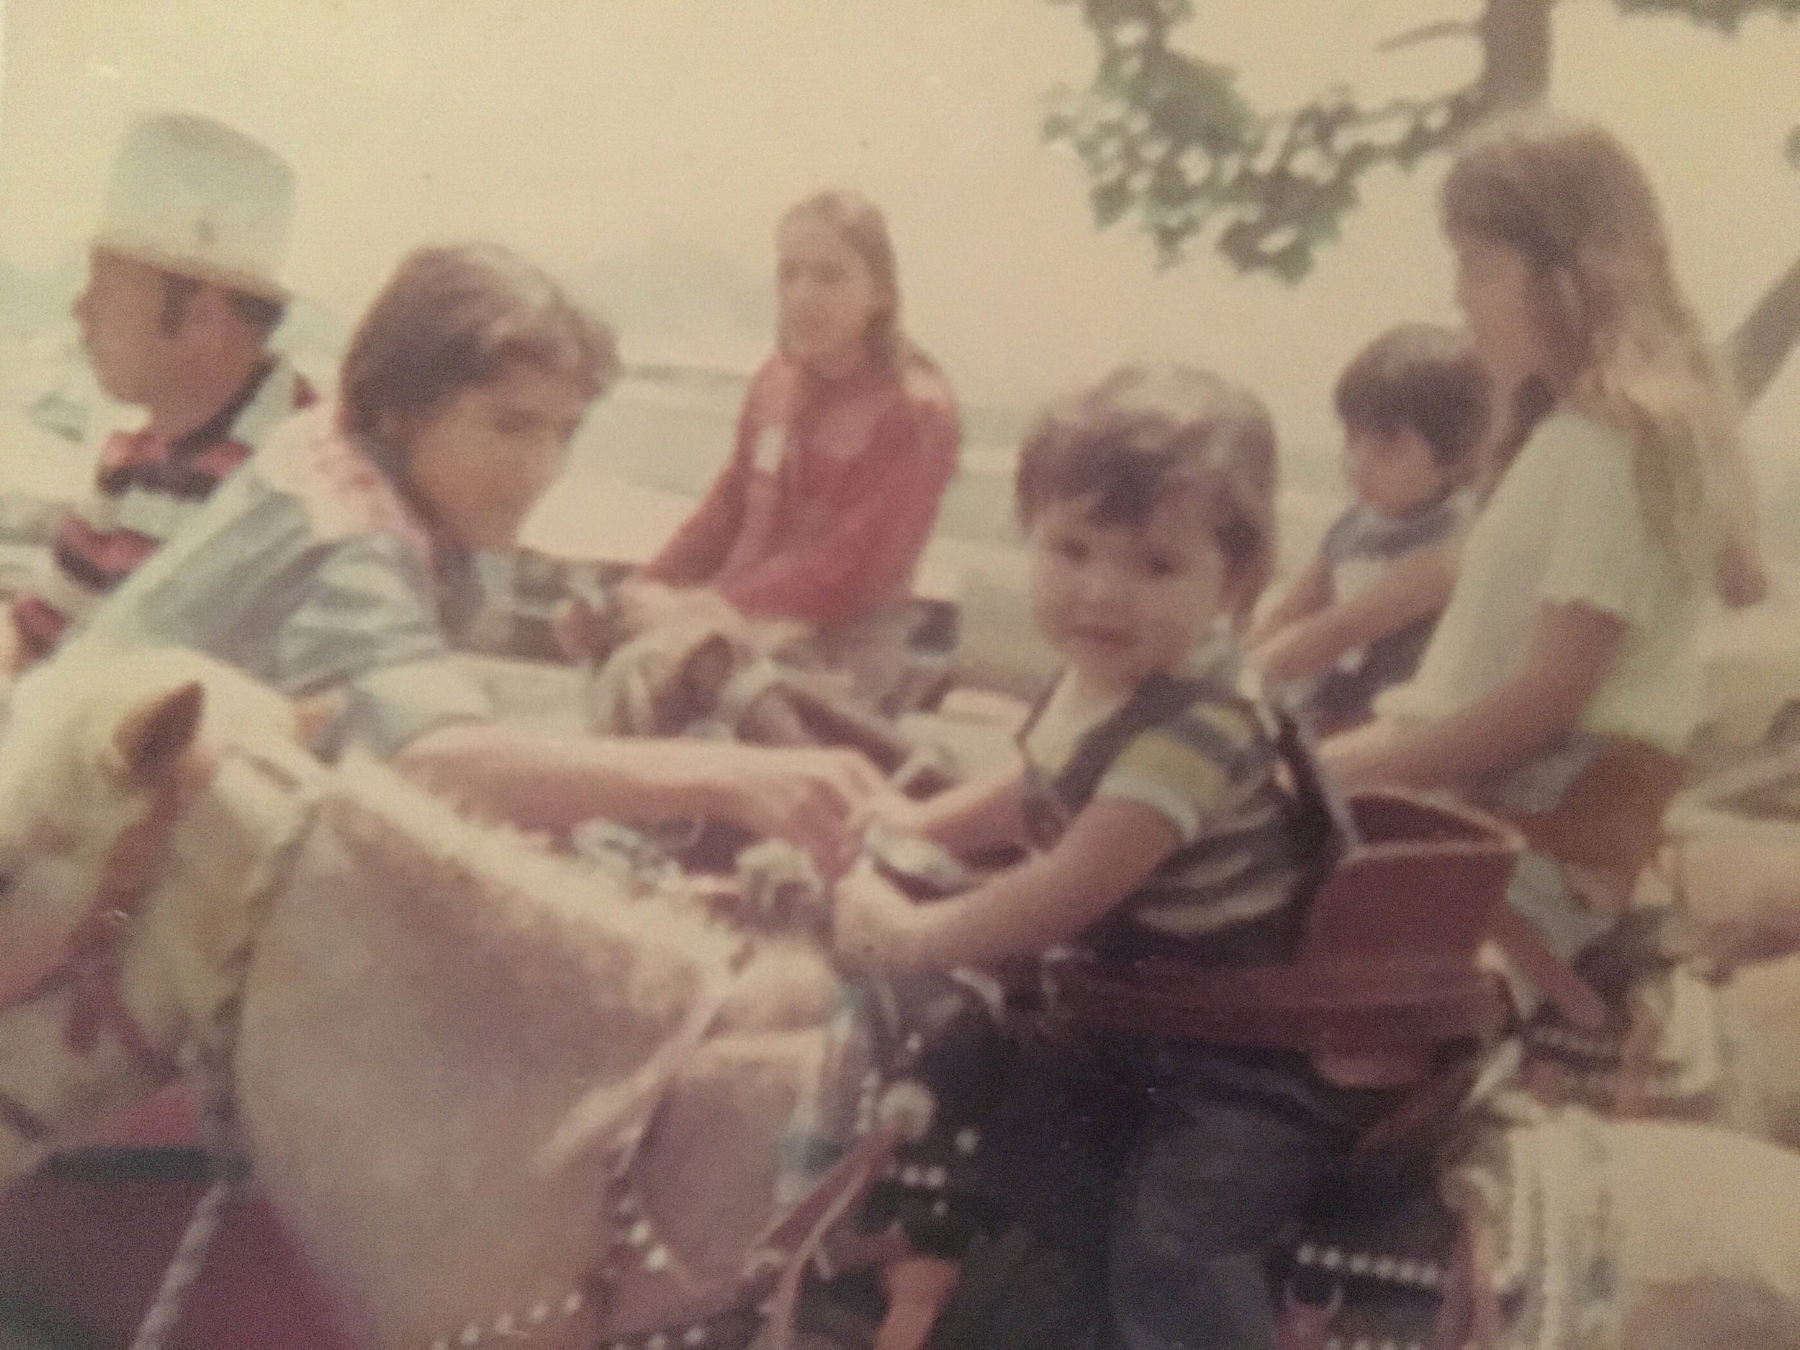 The young man making sure I'm safe on this pony was my Tio Victor. He was one of my greatest loves. He died a violent death in 2003 and after witnessing firsthand the bloody aftermath,I've never been the same. But he visits me in dreams and guides me in ways that confirm to me the spirit world is real.